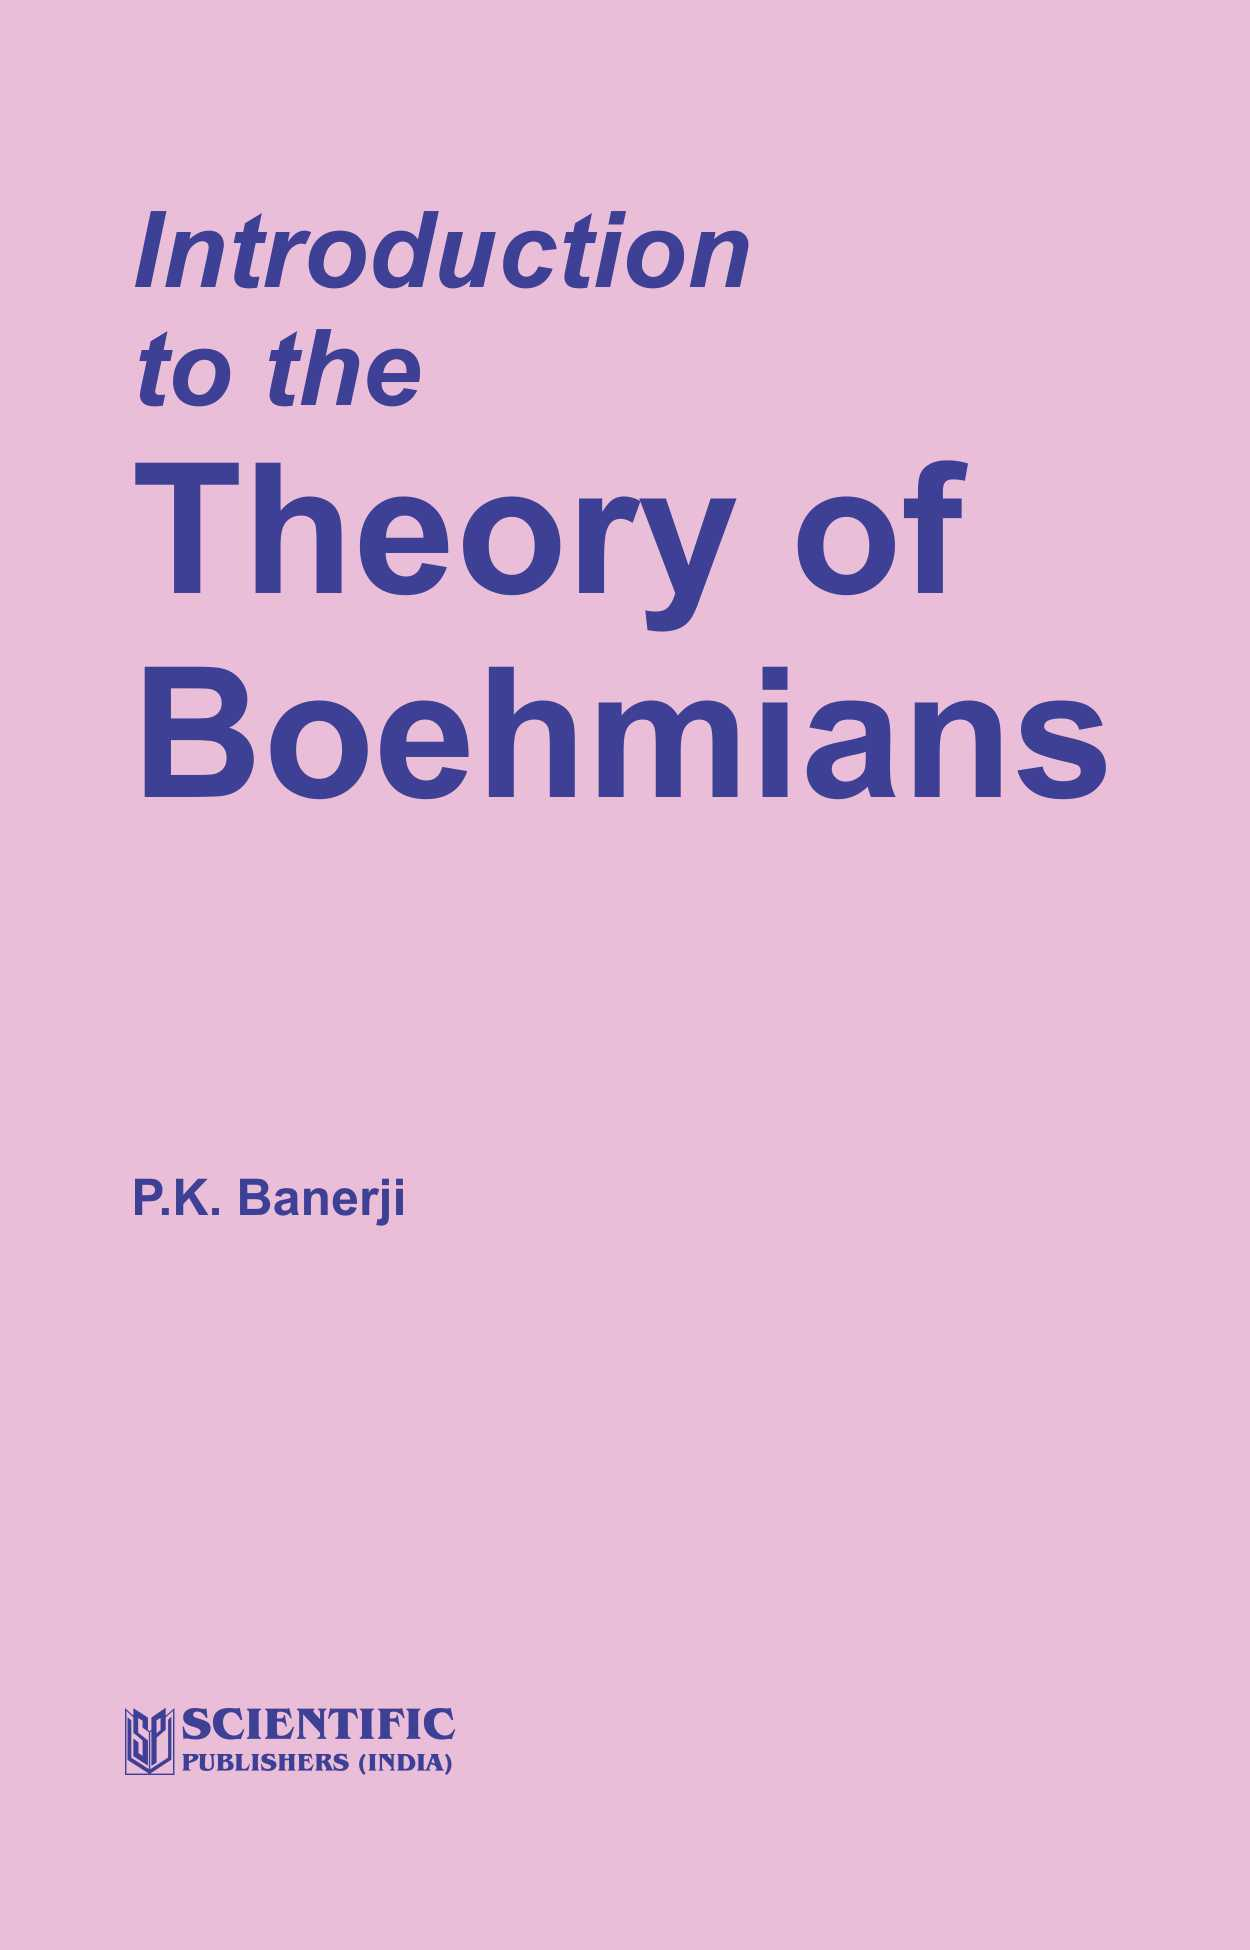 introduction-to-the-theory-of-boehmians